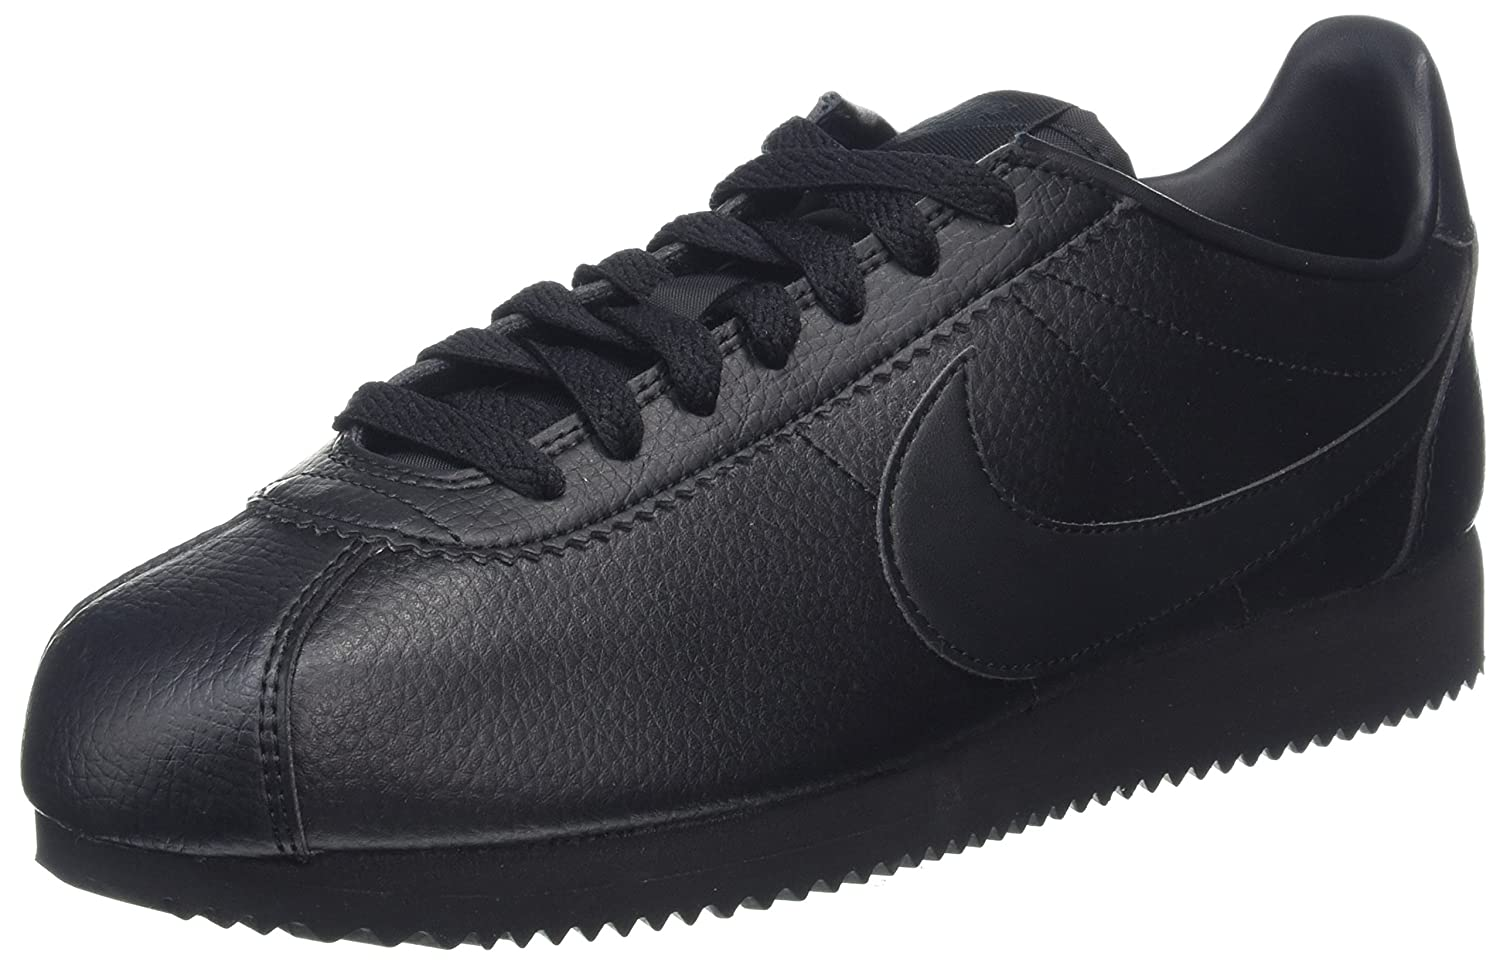 new style d8ed4 bb6b9 Amazon.com   Nike Men s Classic Cortez Leather Running Shoes   Road Running